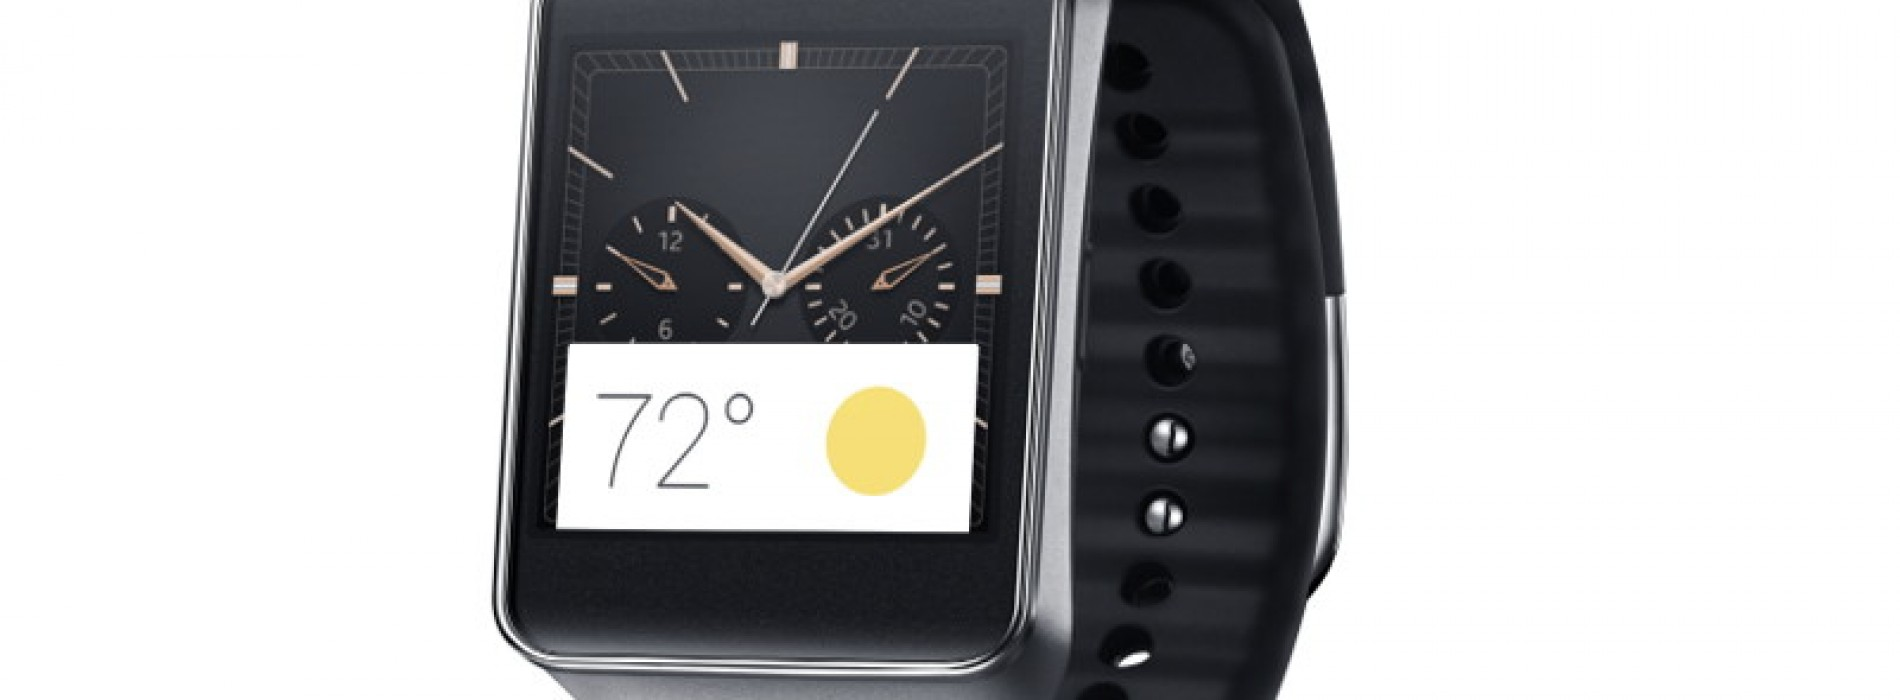 Samsung Gear Live details revealed